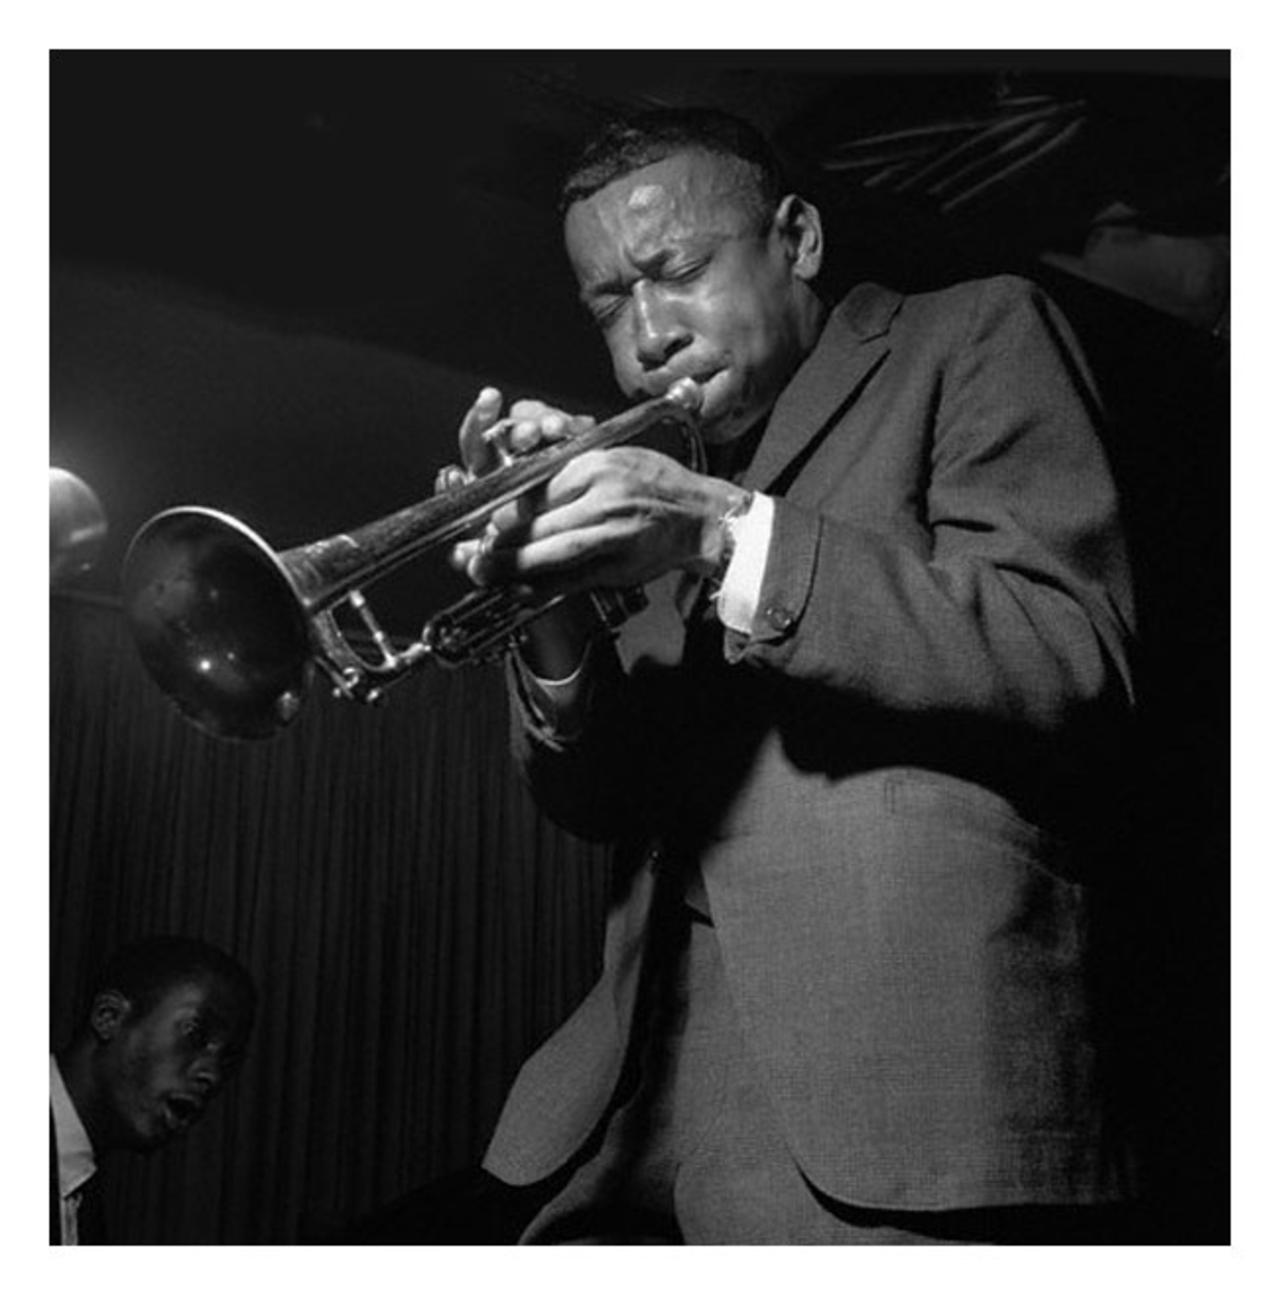 Lee Morgan (Photograph by Francis Wolff © Mosaic Images LLC, used by permission)